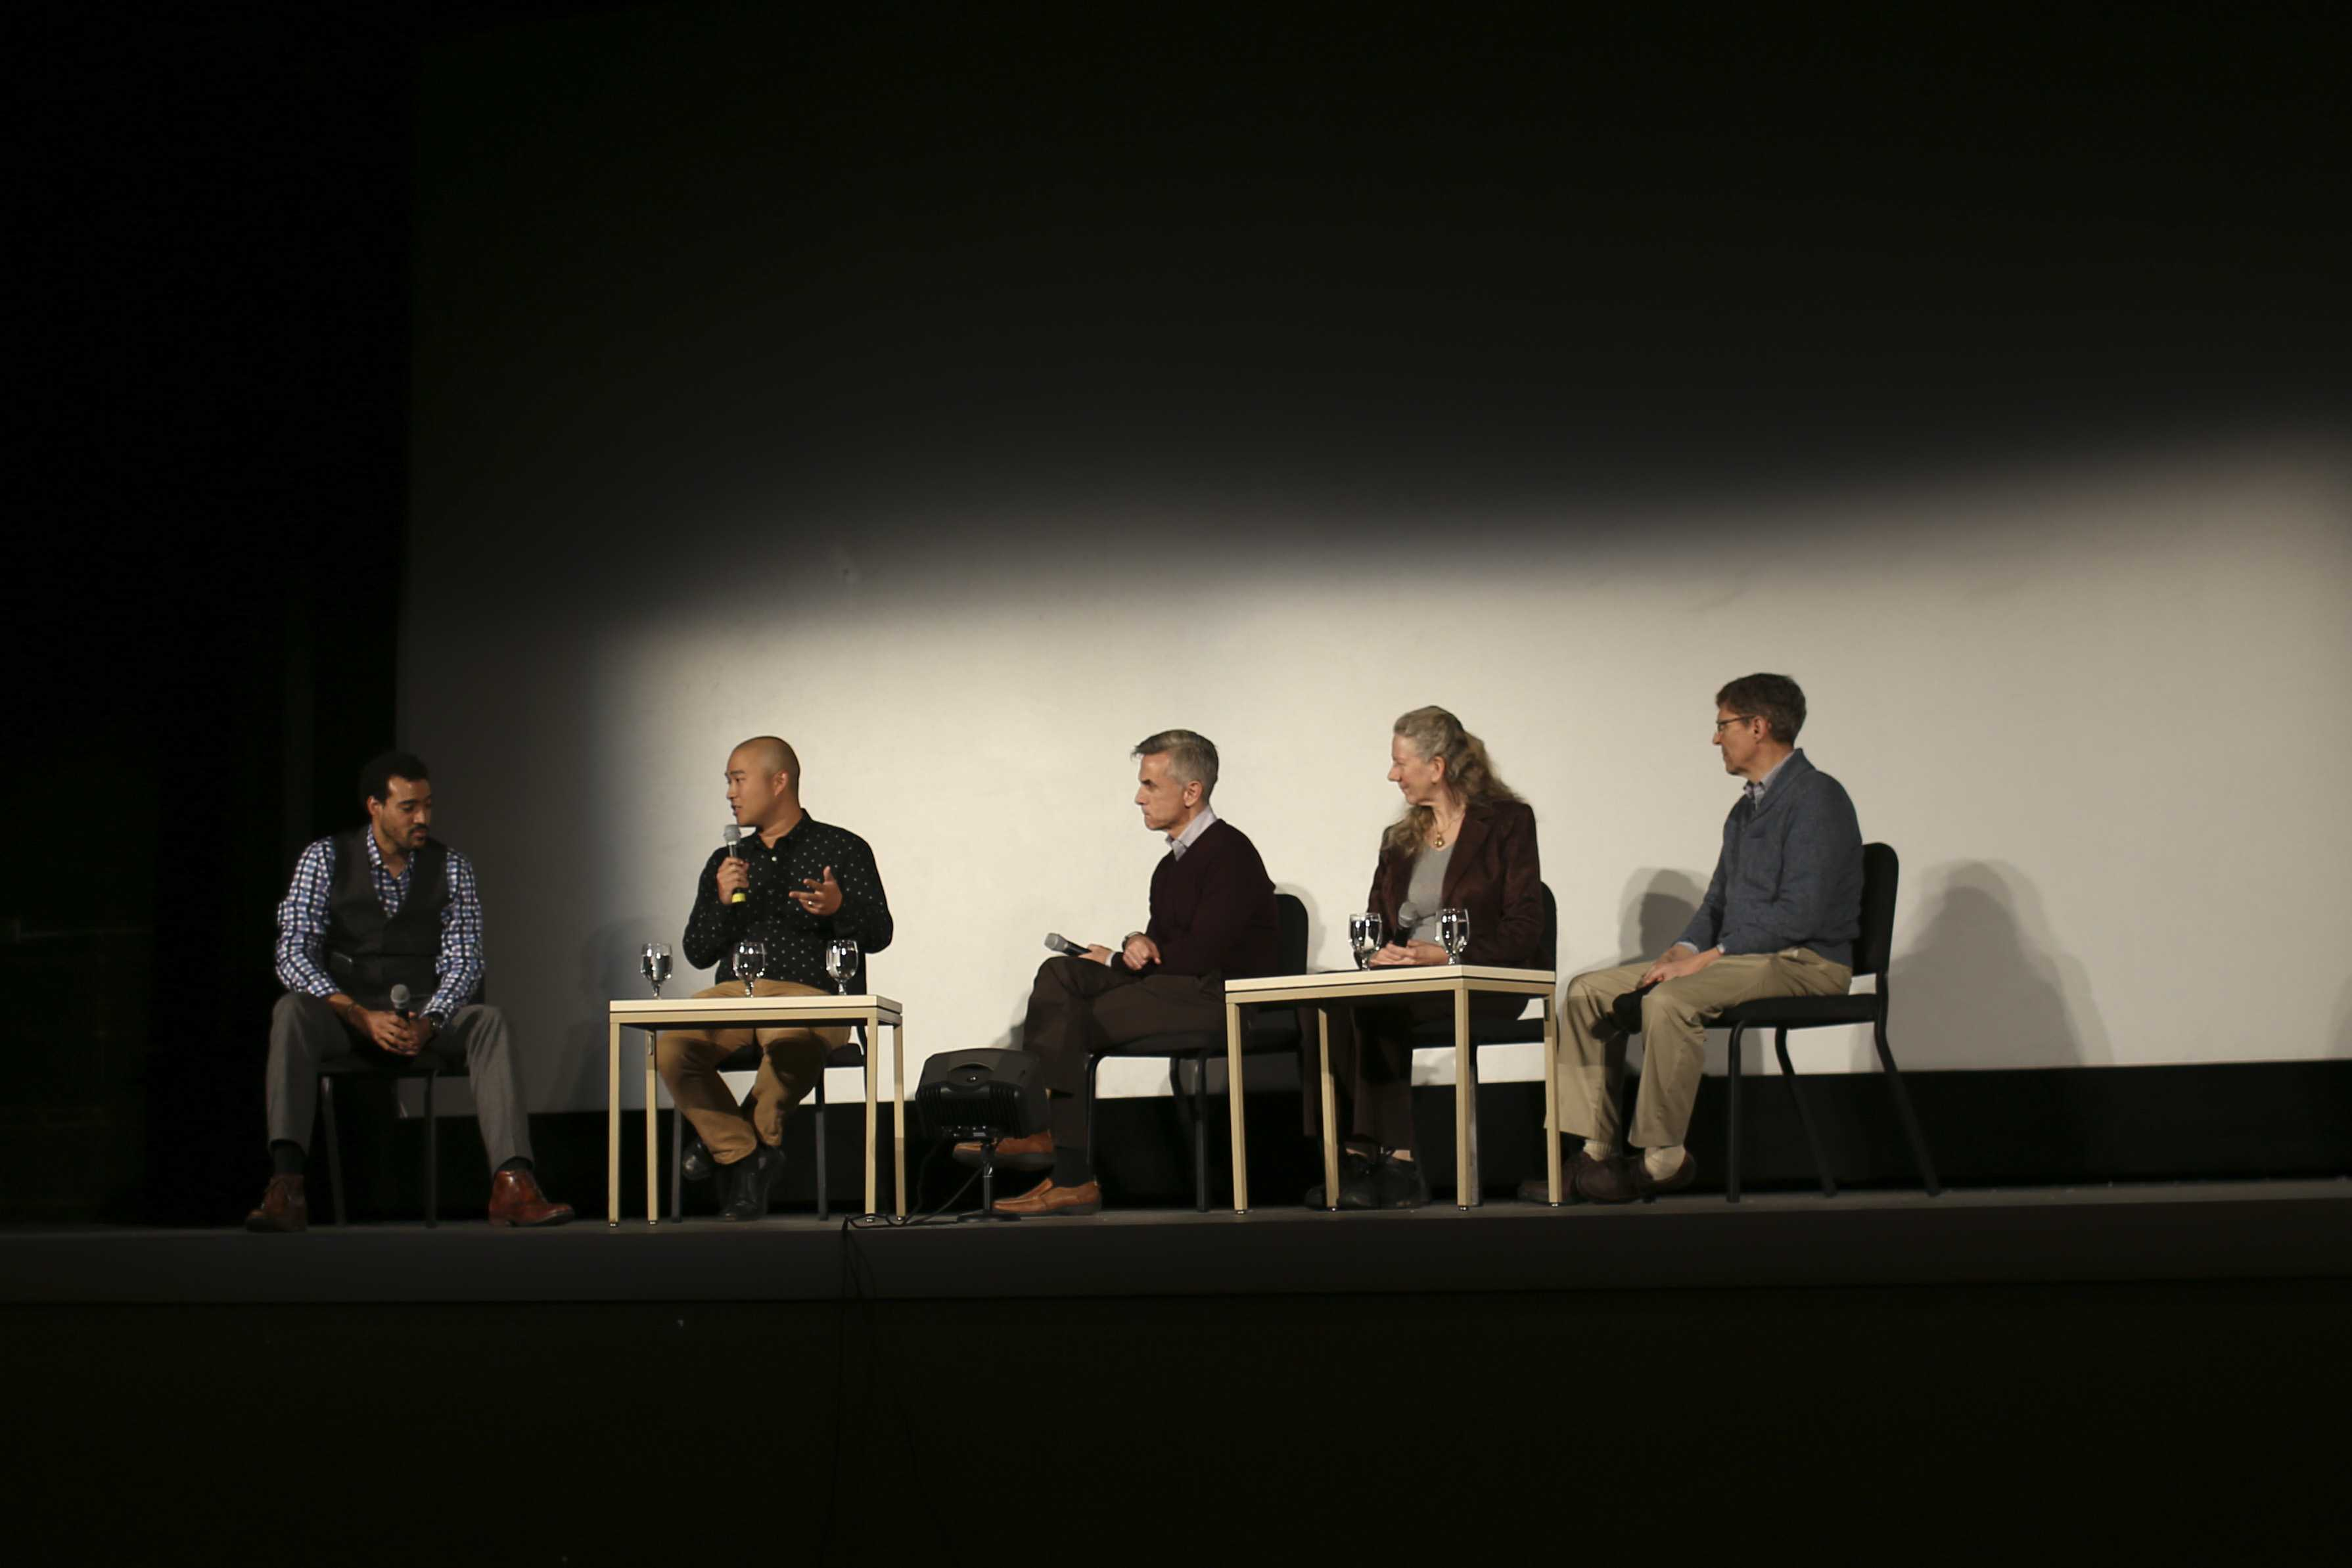 Director John Beder leads a panel of Conservatory faculty at the Apollo Theatre Wednesday night after screening his film Composed. Discussion revolved around the film's exploration of performance anxiety in professional musicians, hoping to shed light on a little-discussed area of the music world.